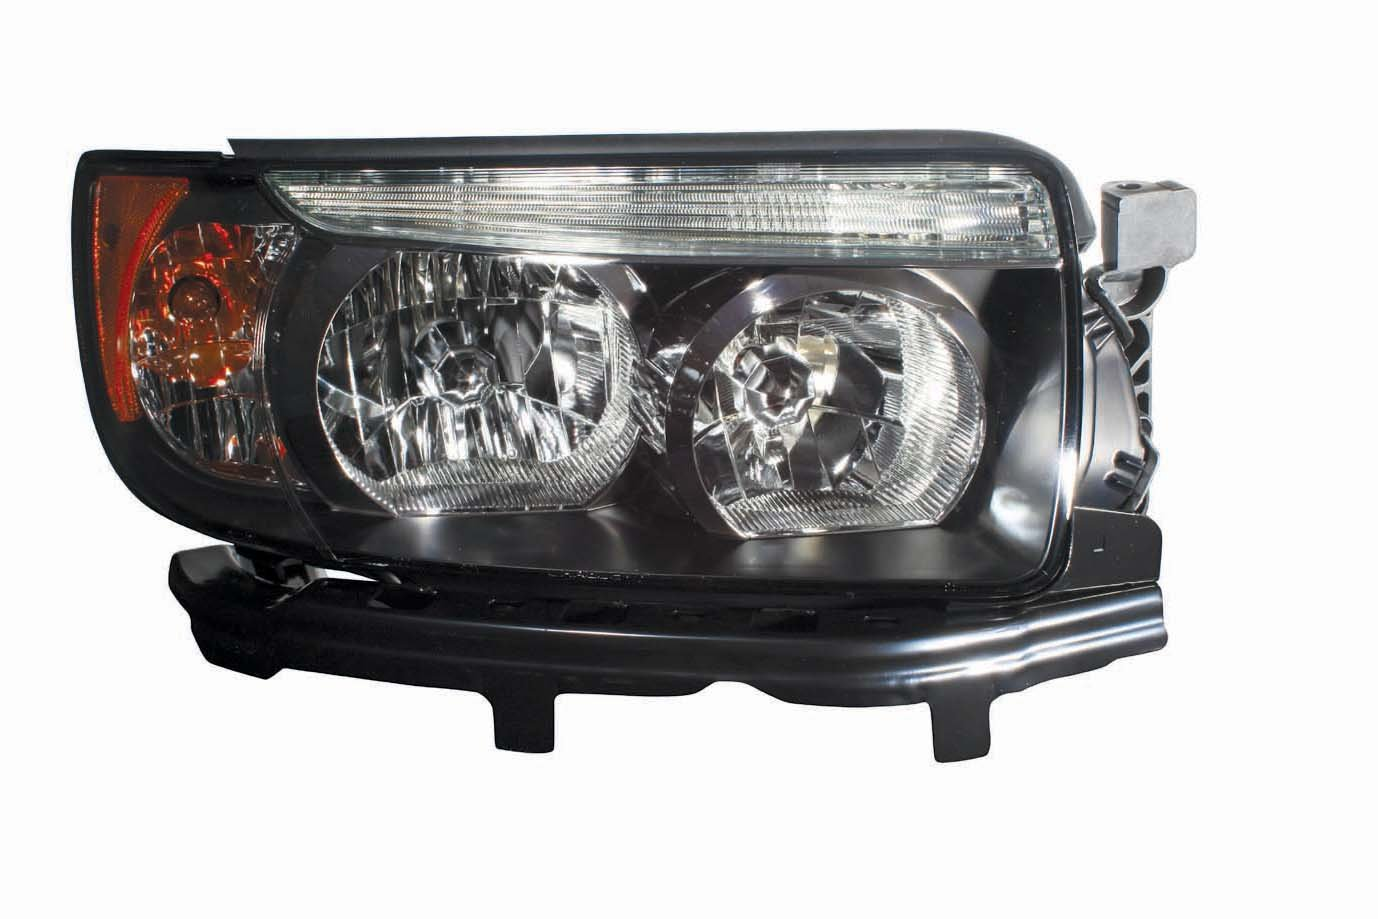 Depo 320 1119l As7 Subaru Forester Driver Side Head Lamp 2008 Fuse Box Assembly With Sport Package Automotive